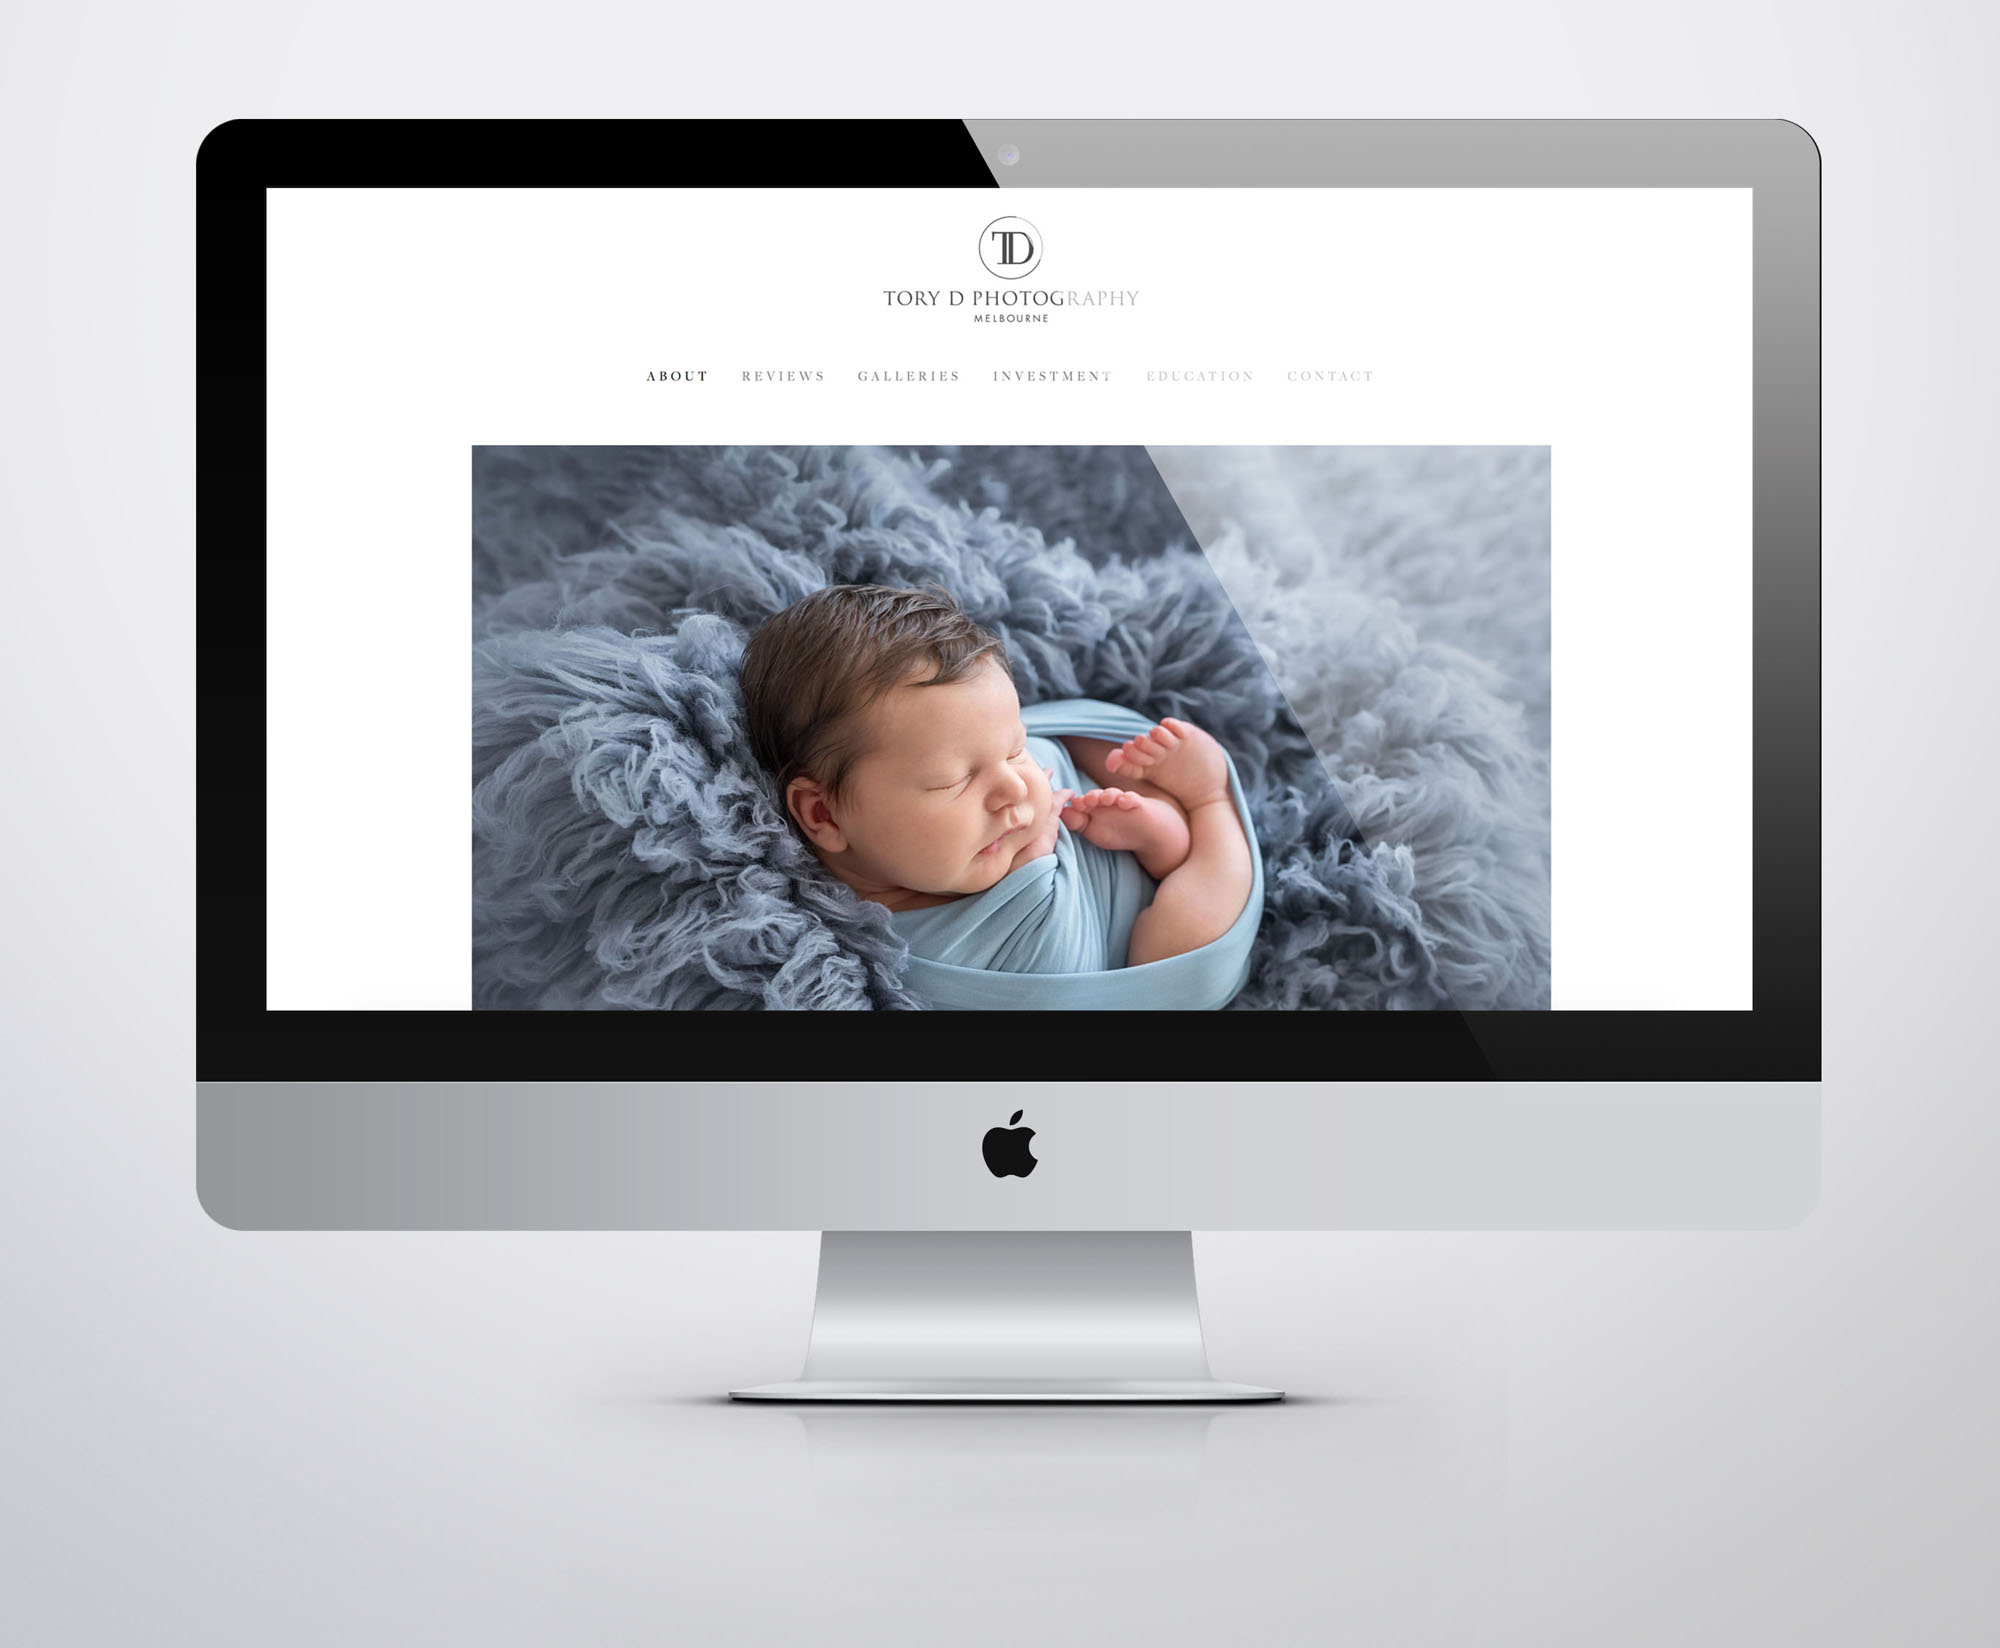 Tory D Photography Web Design Website for Photographers